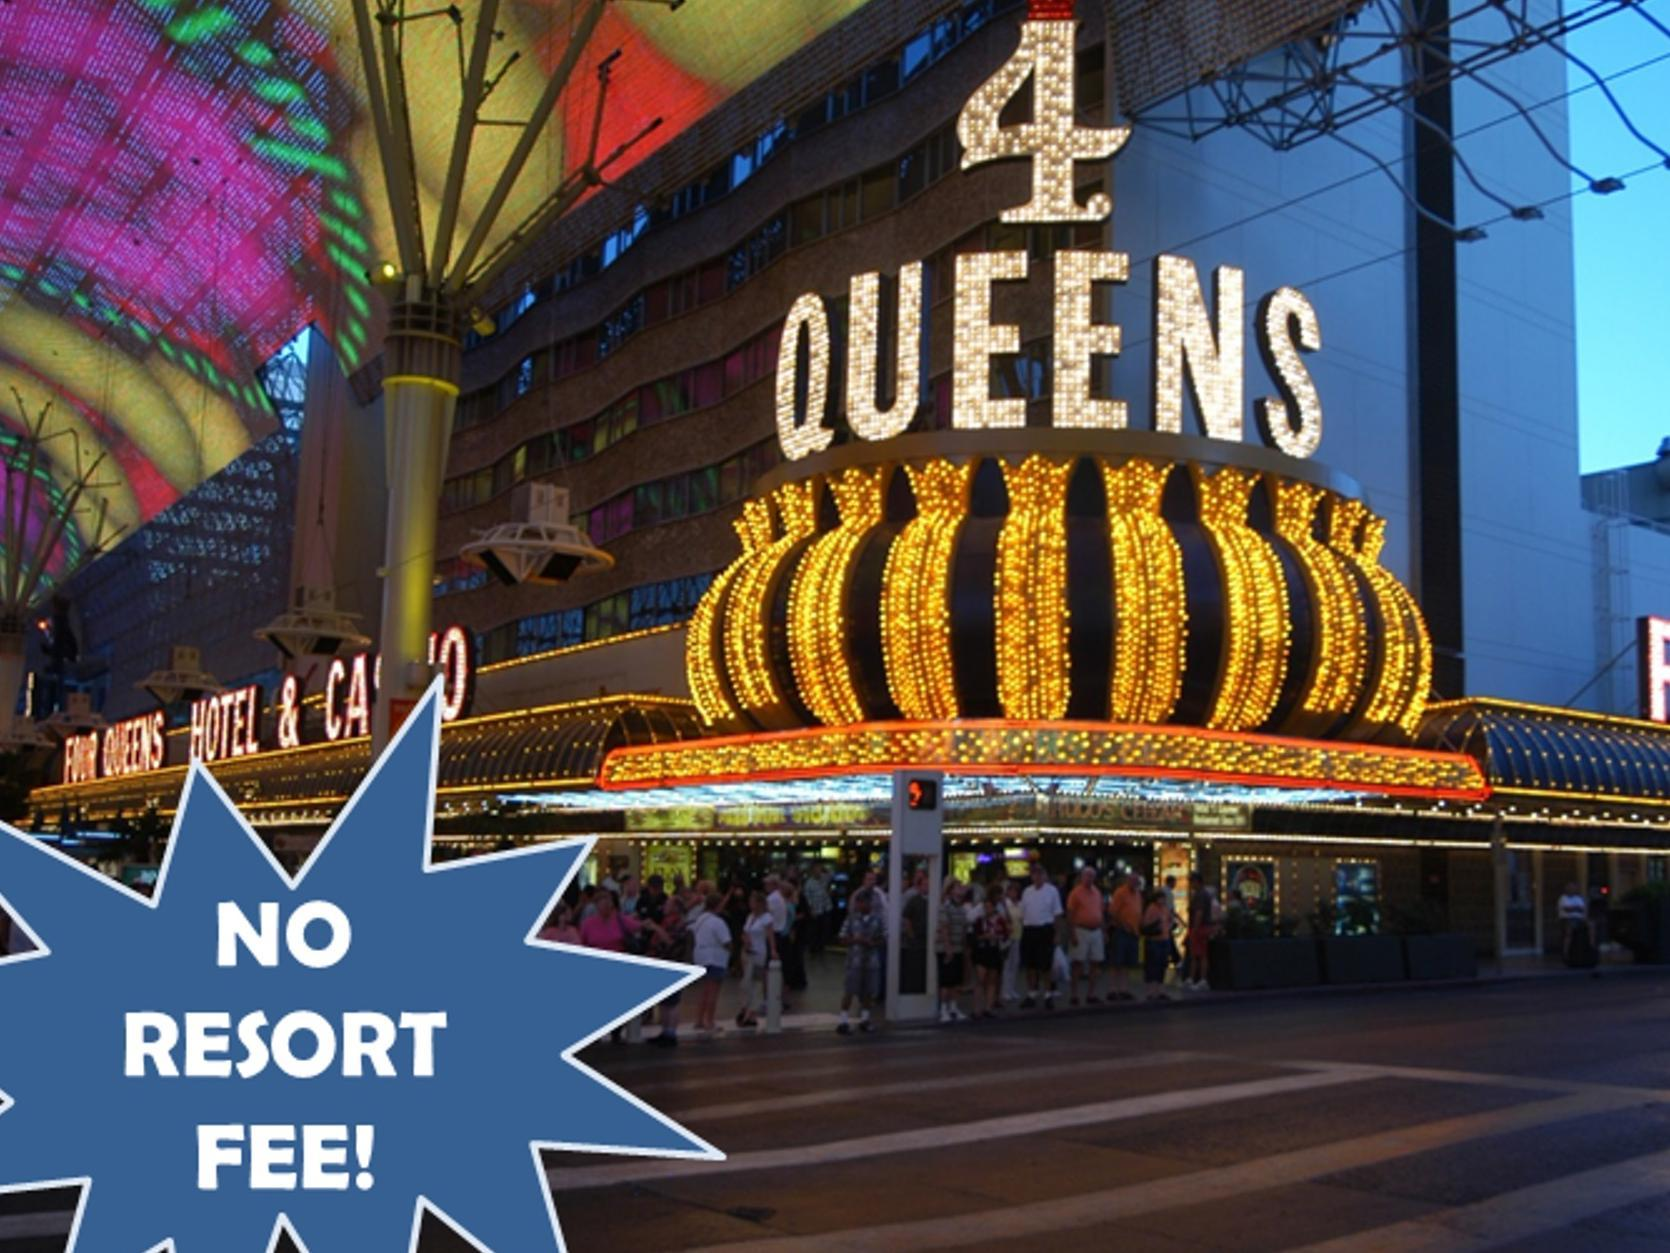 Four Queens Hotel & Casino Las Vegas (NV)